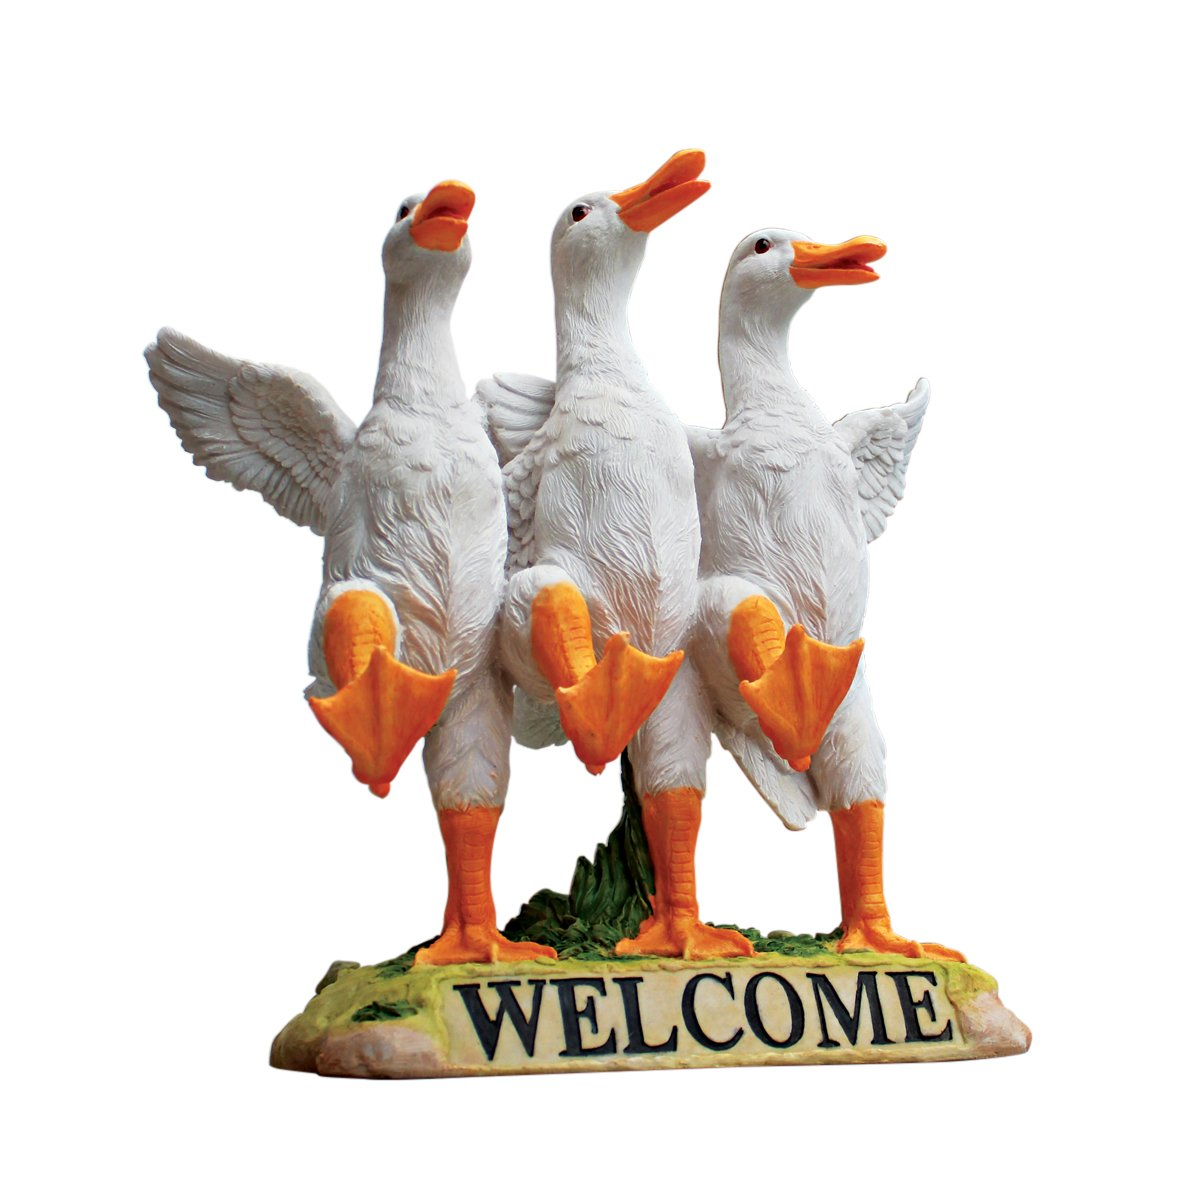 Design Toscano Delightful Dancing Ducks Welcome Sign Garden Statue, 28 cm, Polyresin, Full Color product image